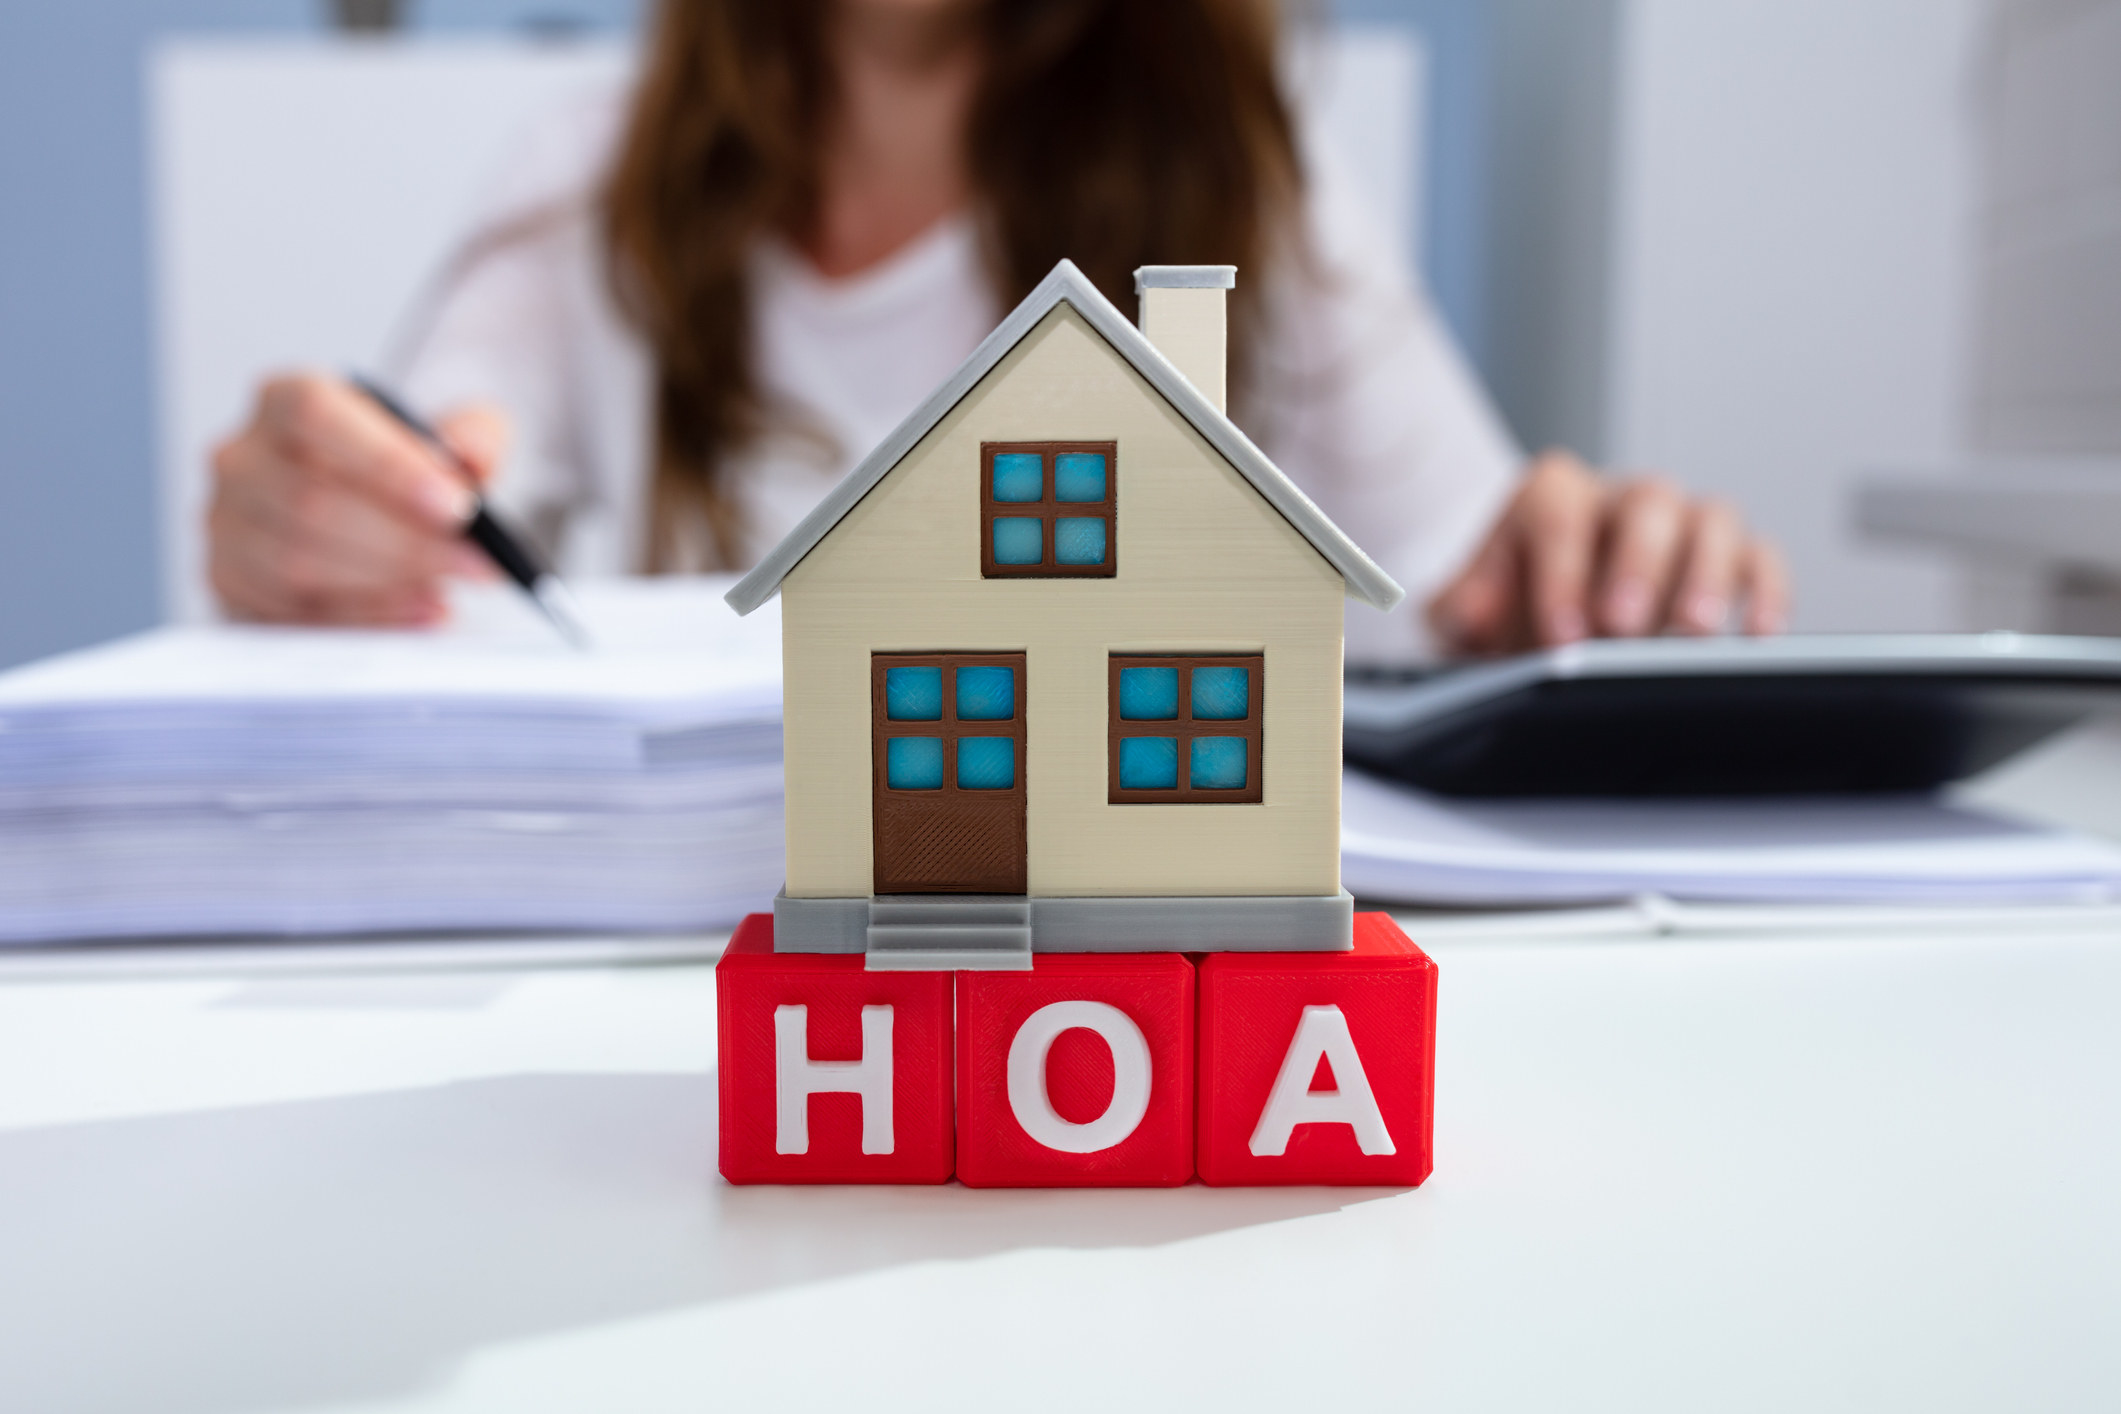 """Blocks that say """"HOA"""" with a tiny house figurine on top"""